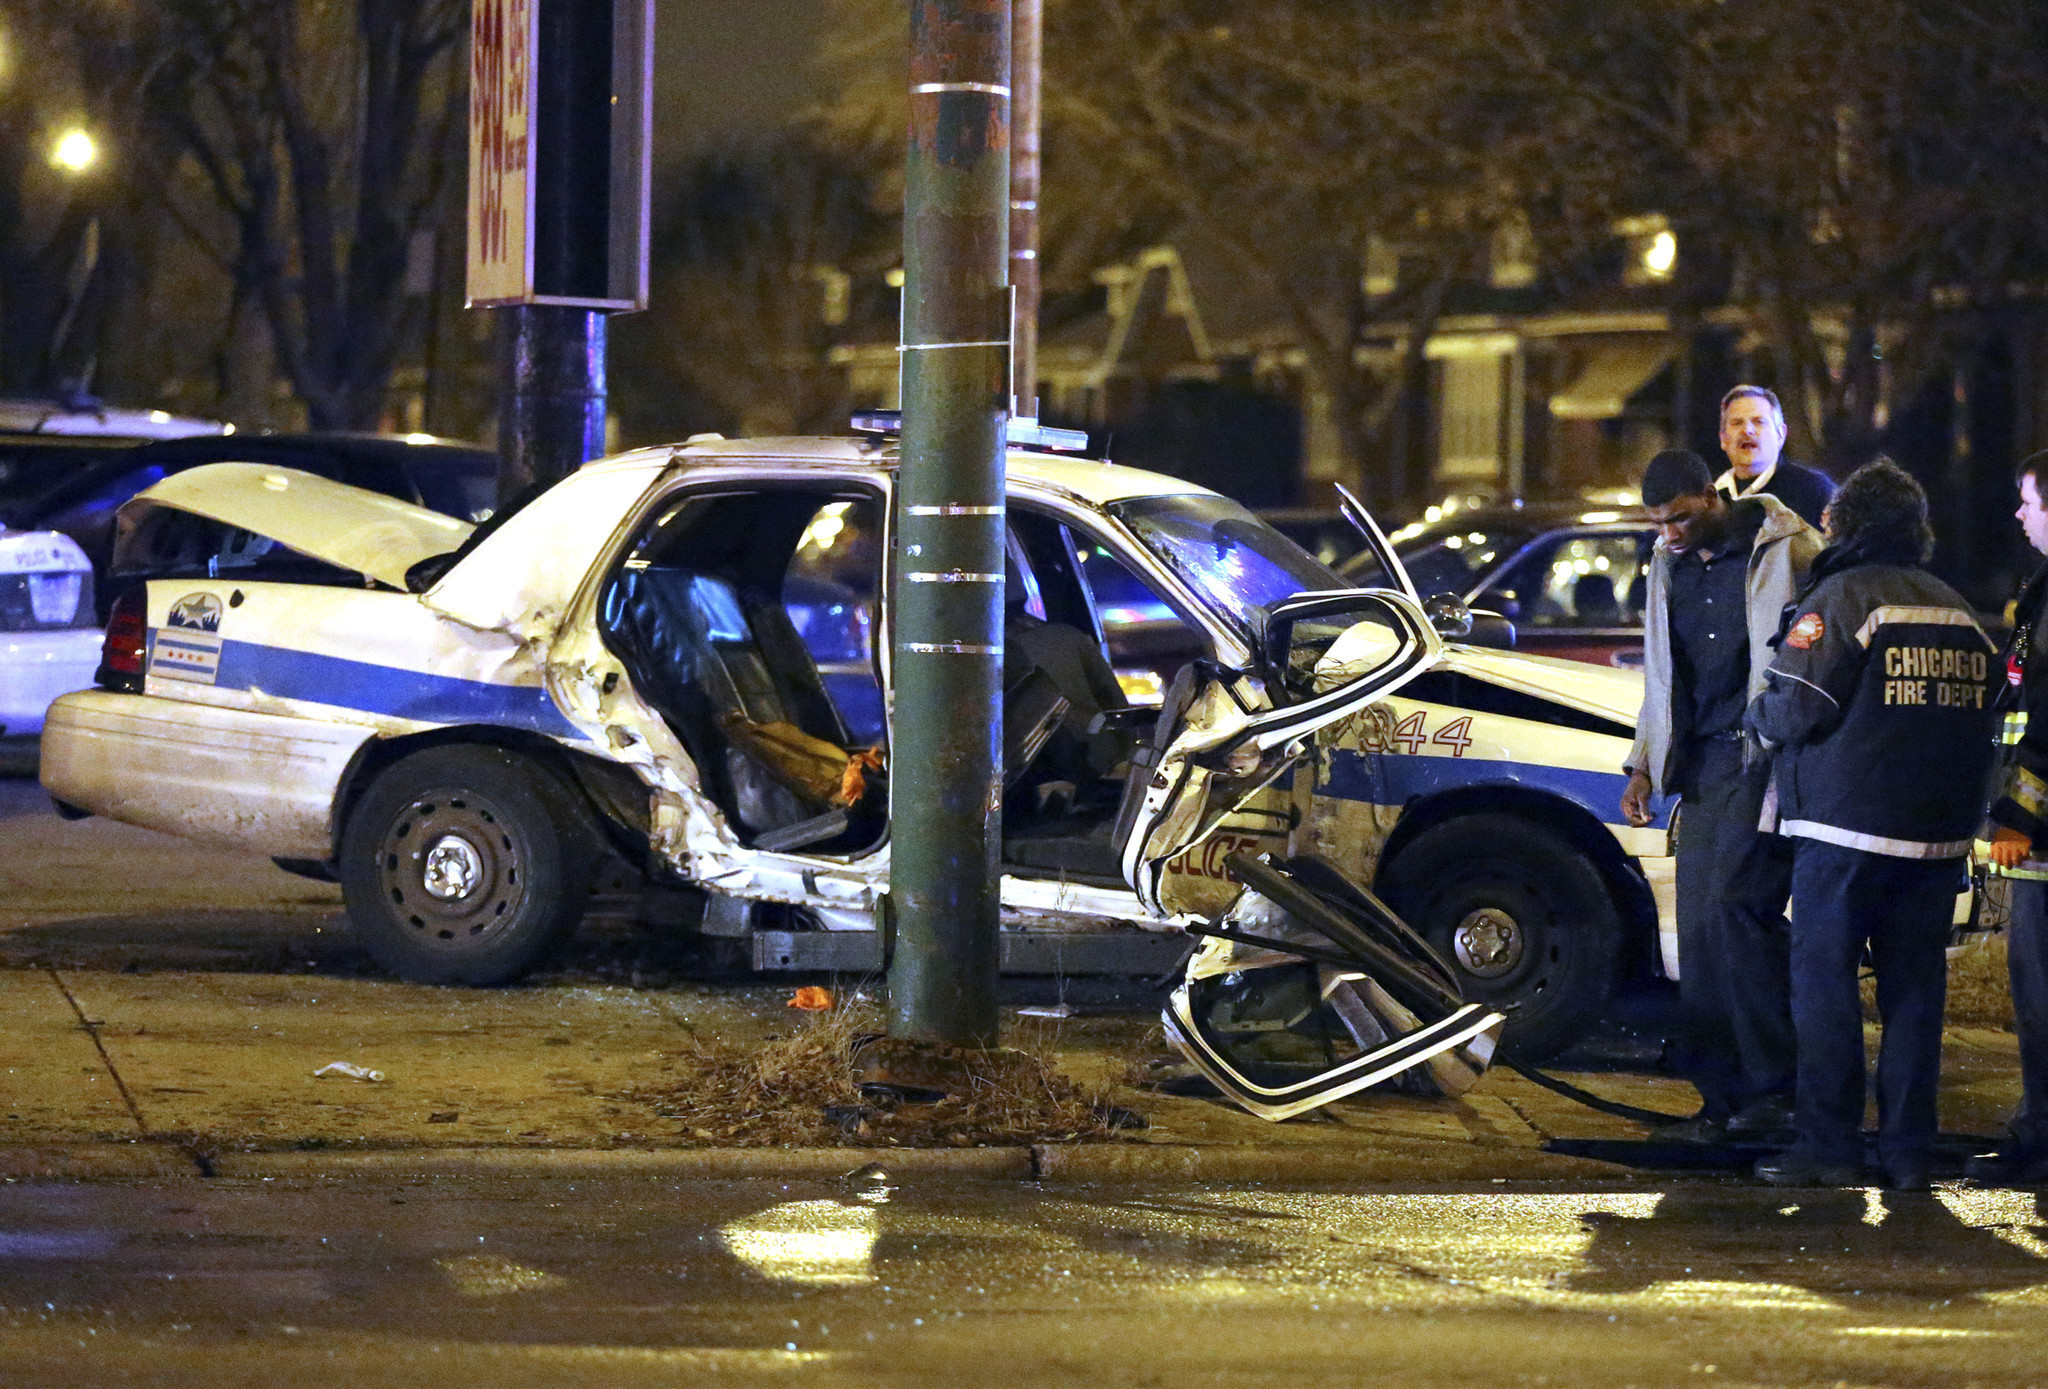 4 Seriously Injured In Crash Involving Chicago Police Car